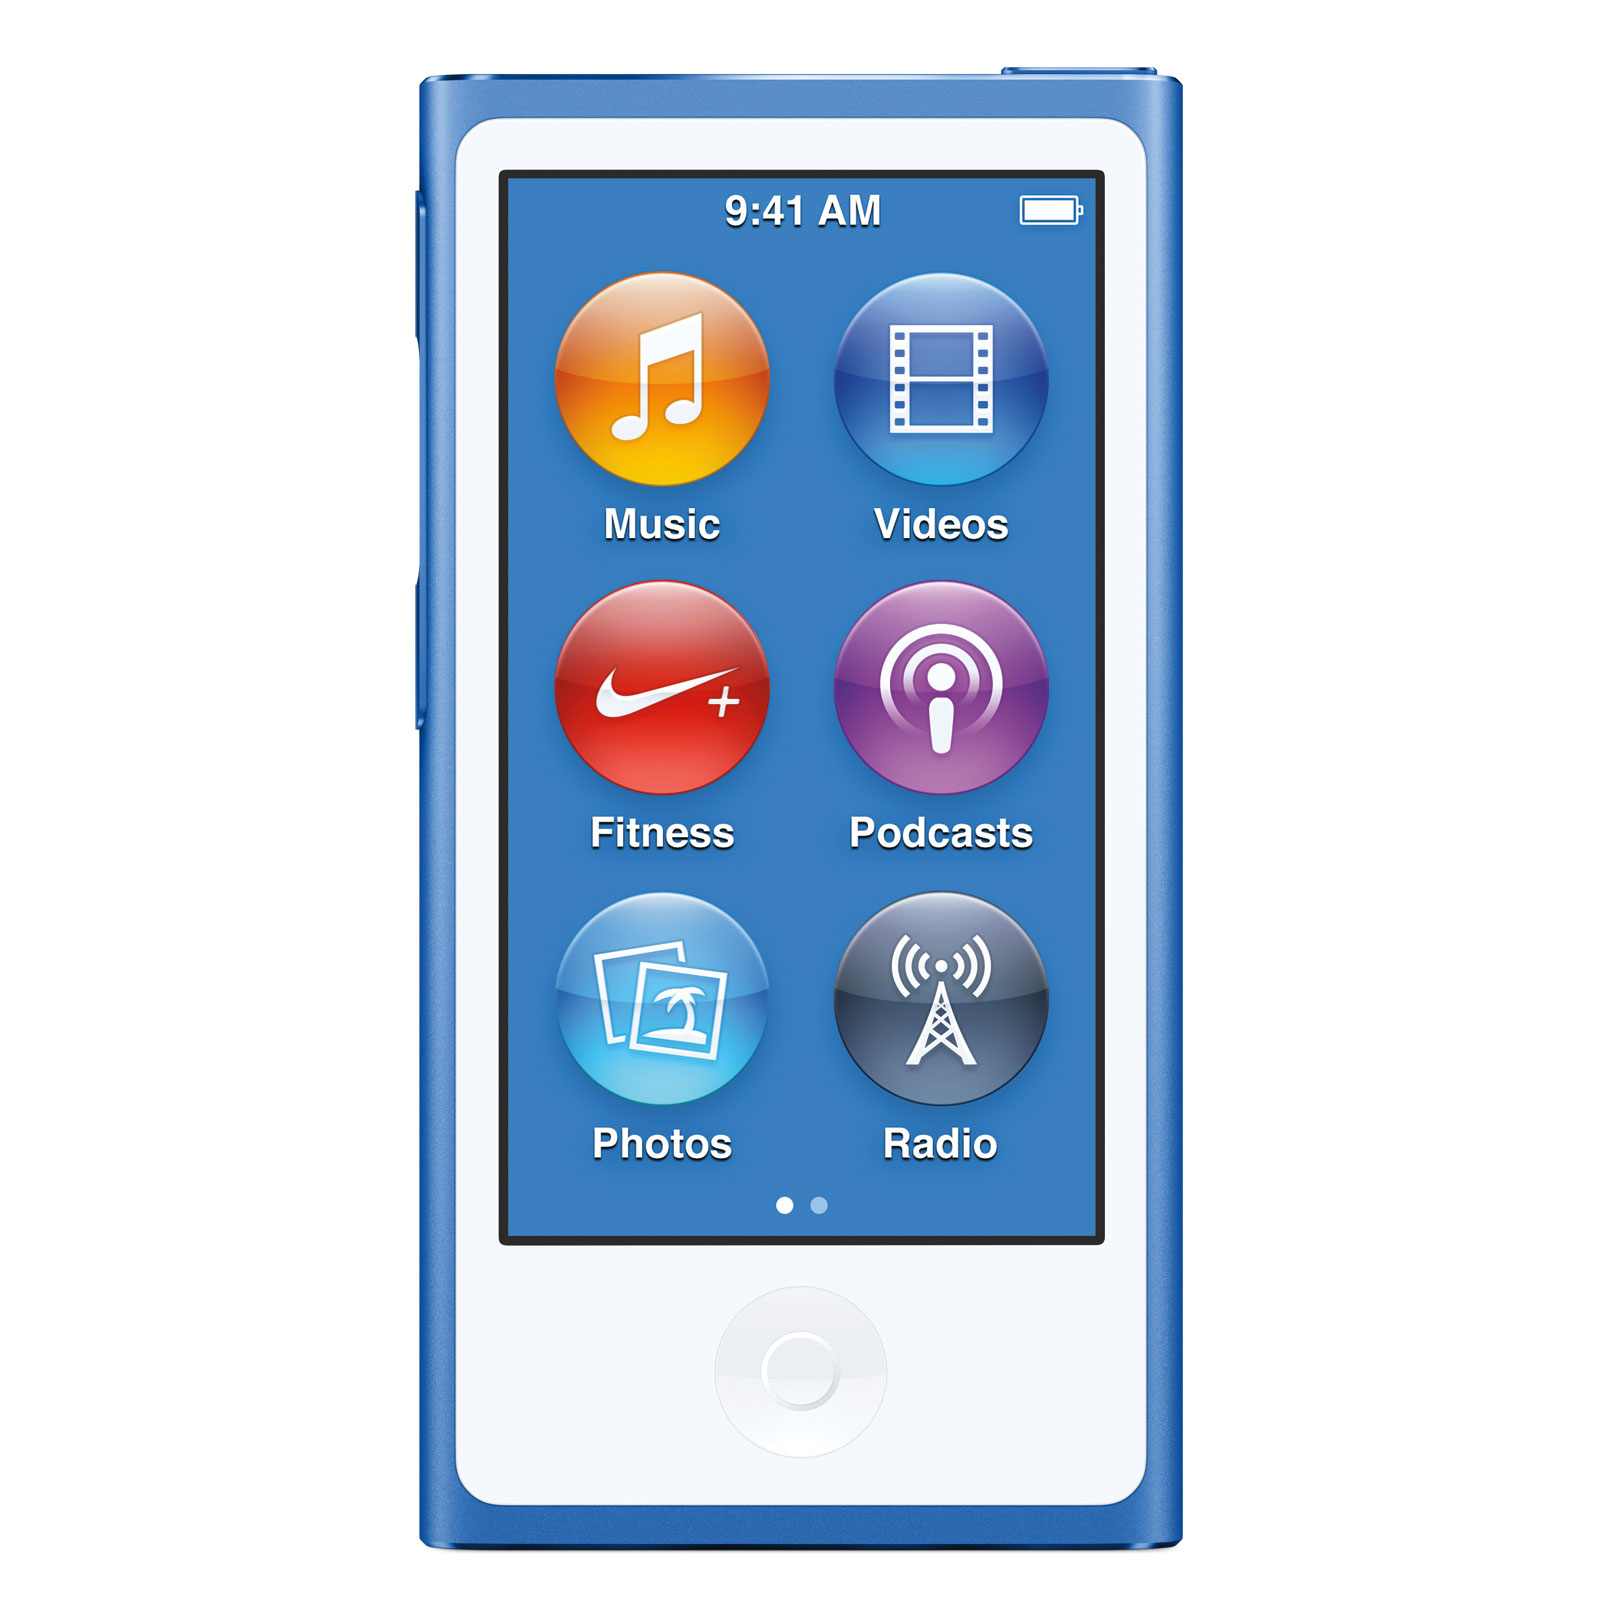 apple ipod nano 16 go bleu 2015 mkn02zd a achat vente lecteur mp3 ipod sur. Black Bedroom Furniture Sets. Home Design Ideas